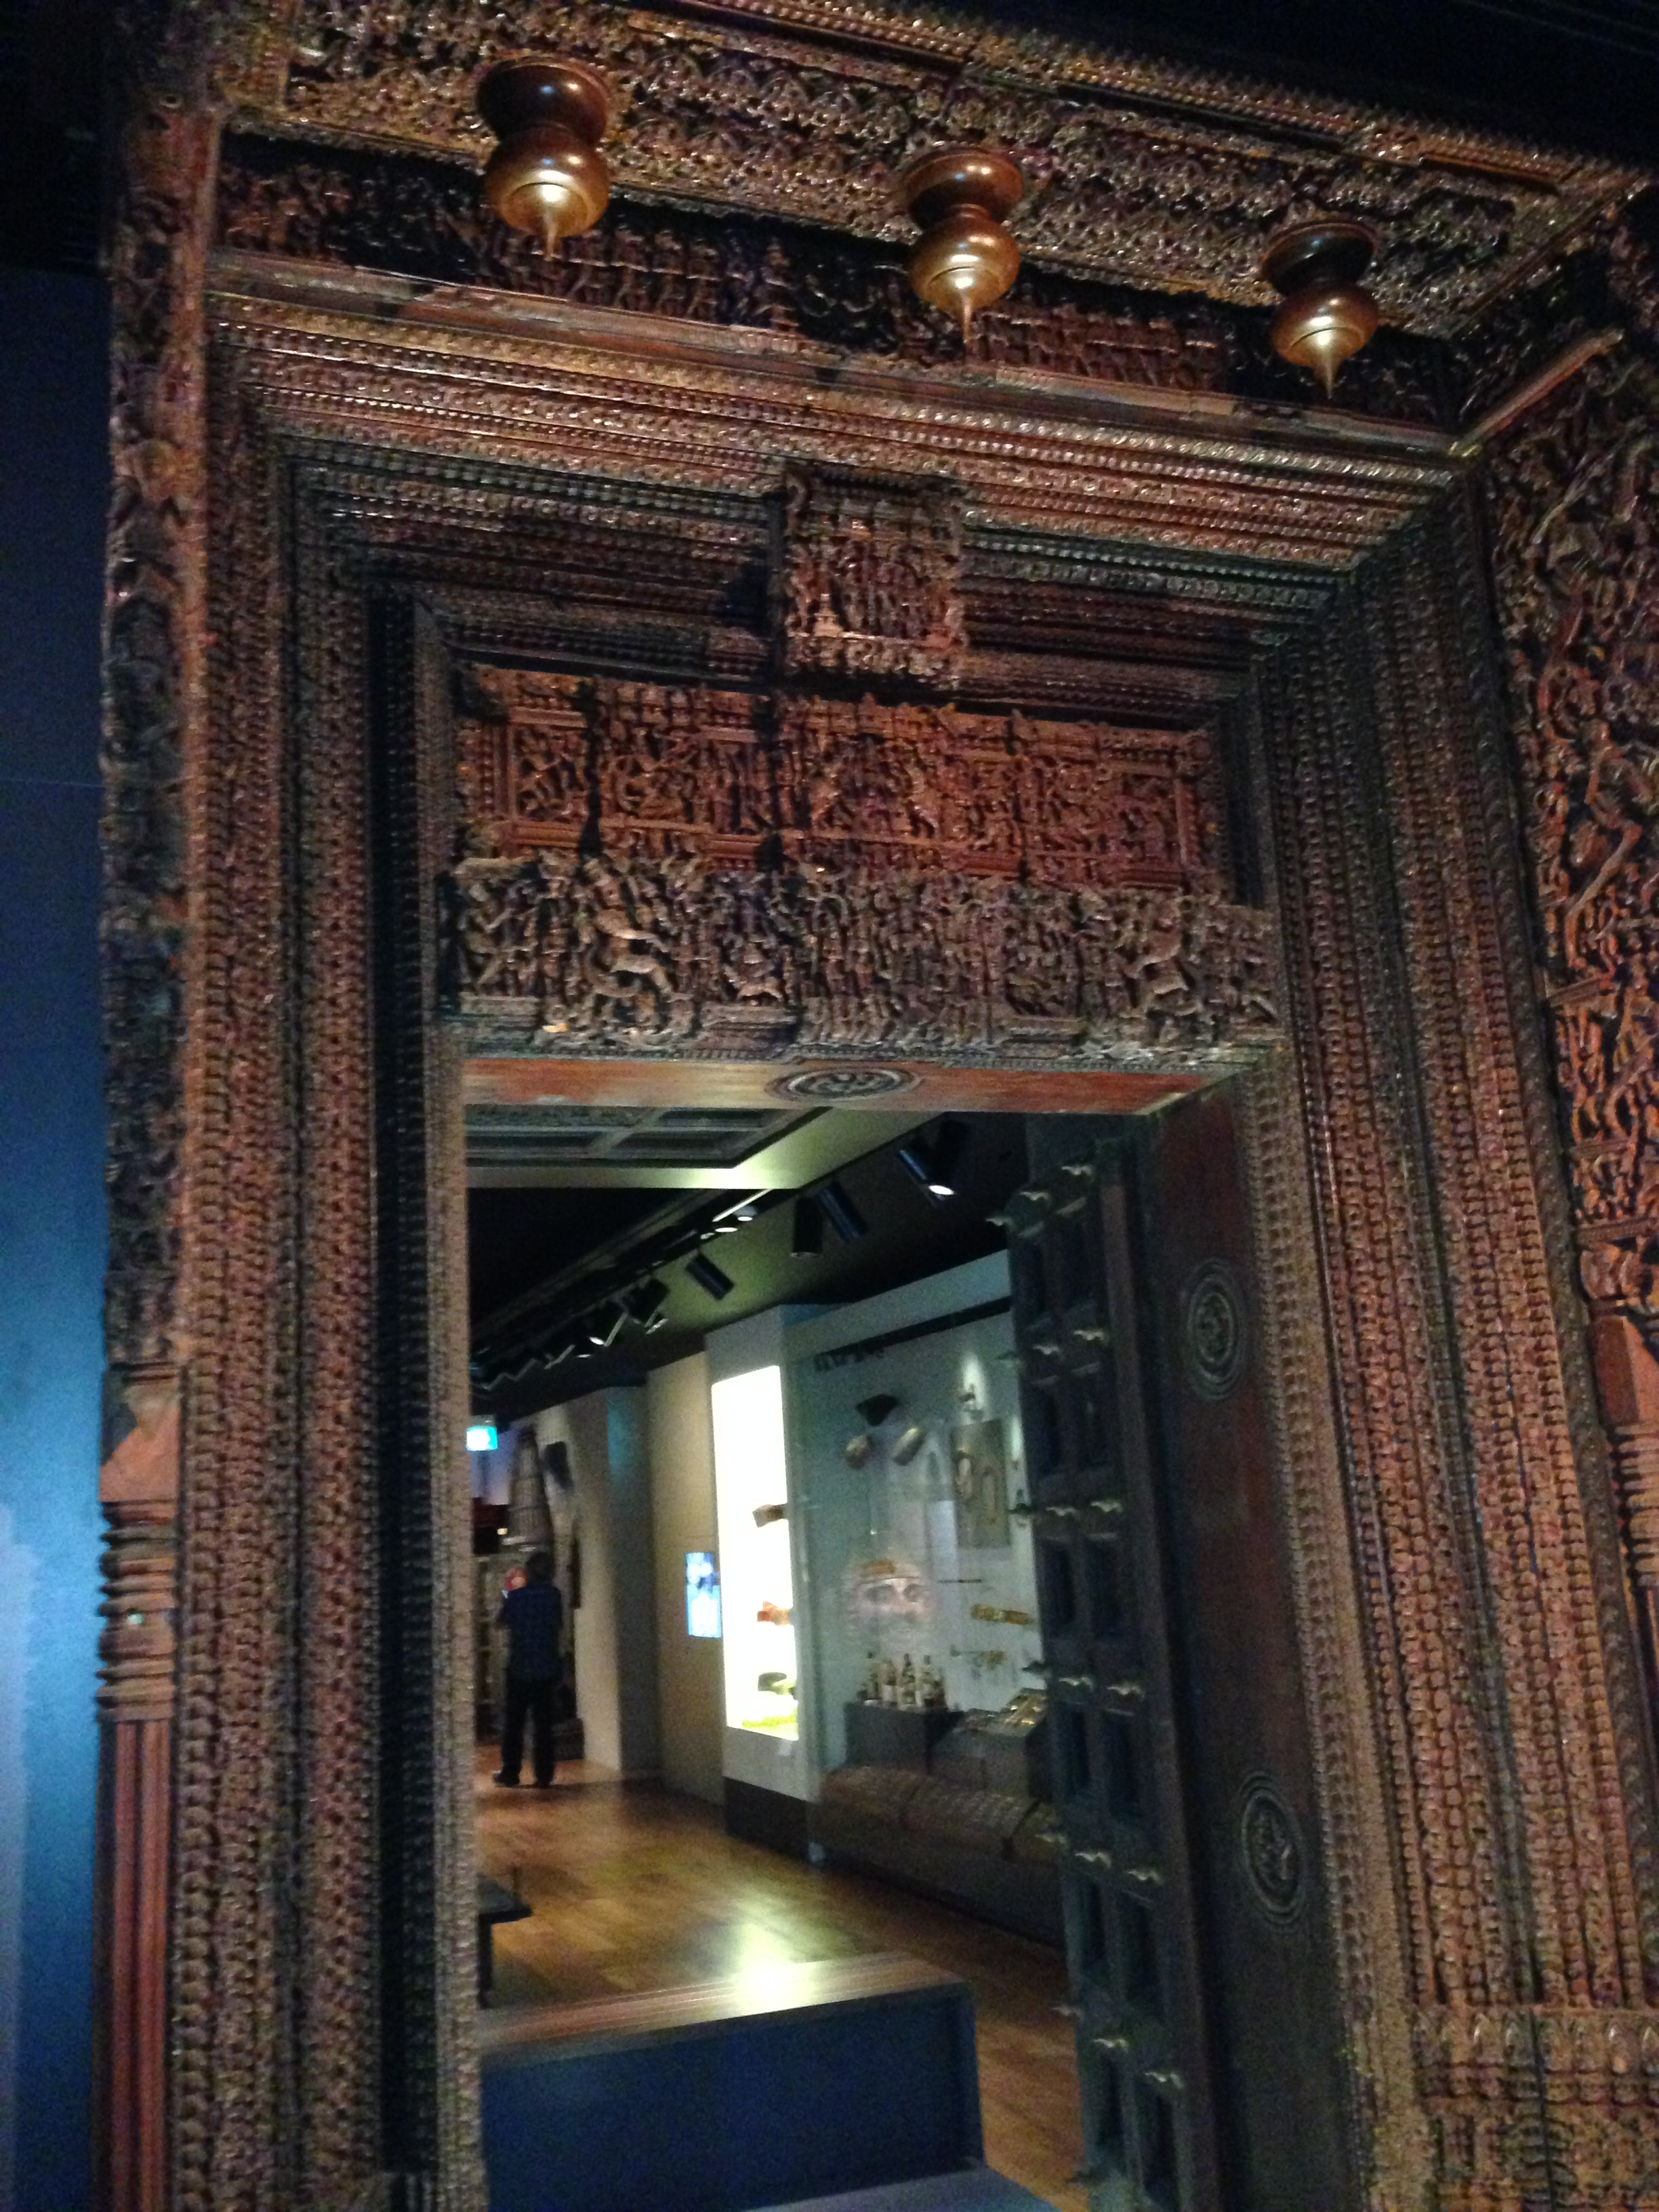 An intricately carved wooden Chettinad doorway (late 19th – early 20th century) in the Indian Heritage Centre, Singapore.